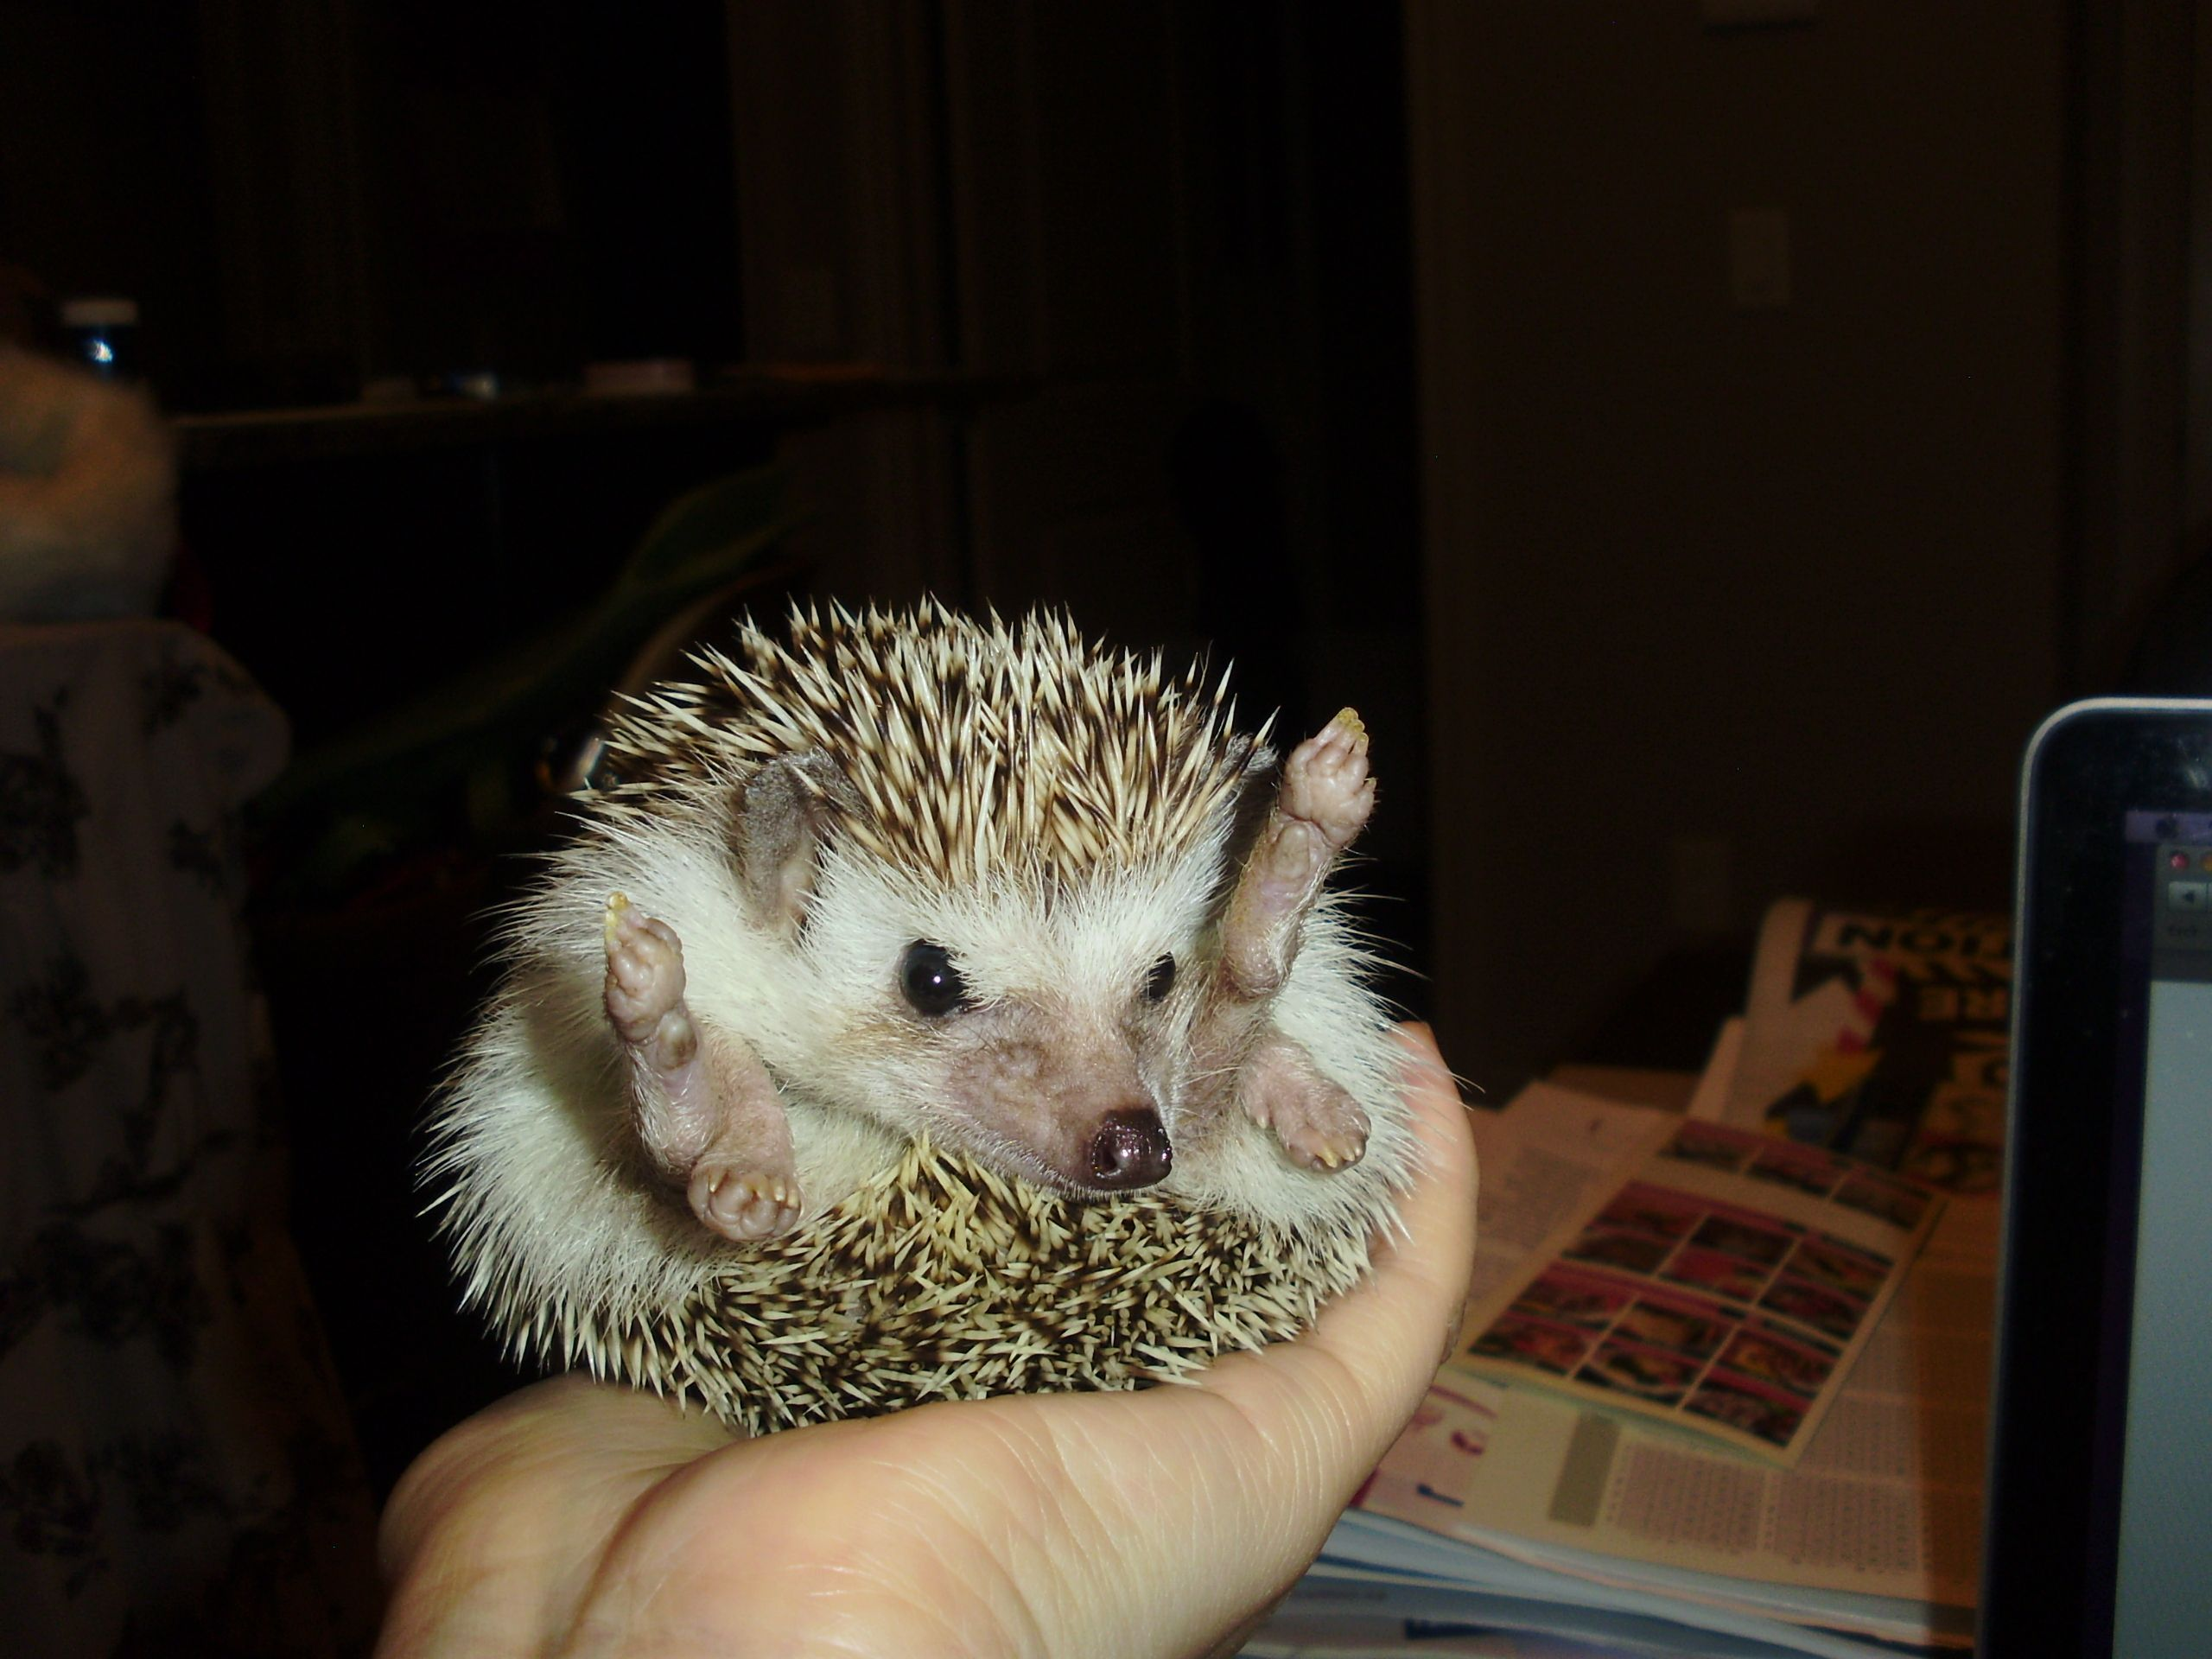 Chilling out with my hedgehog